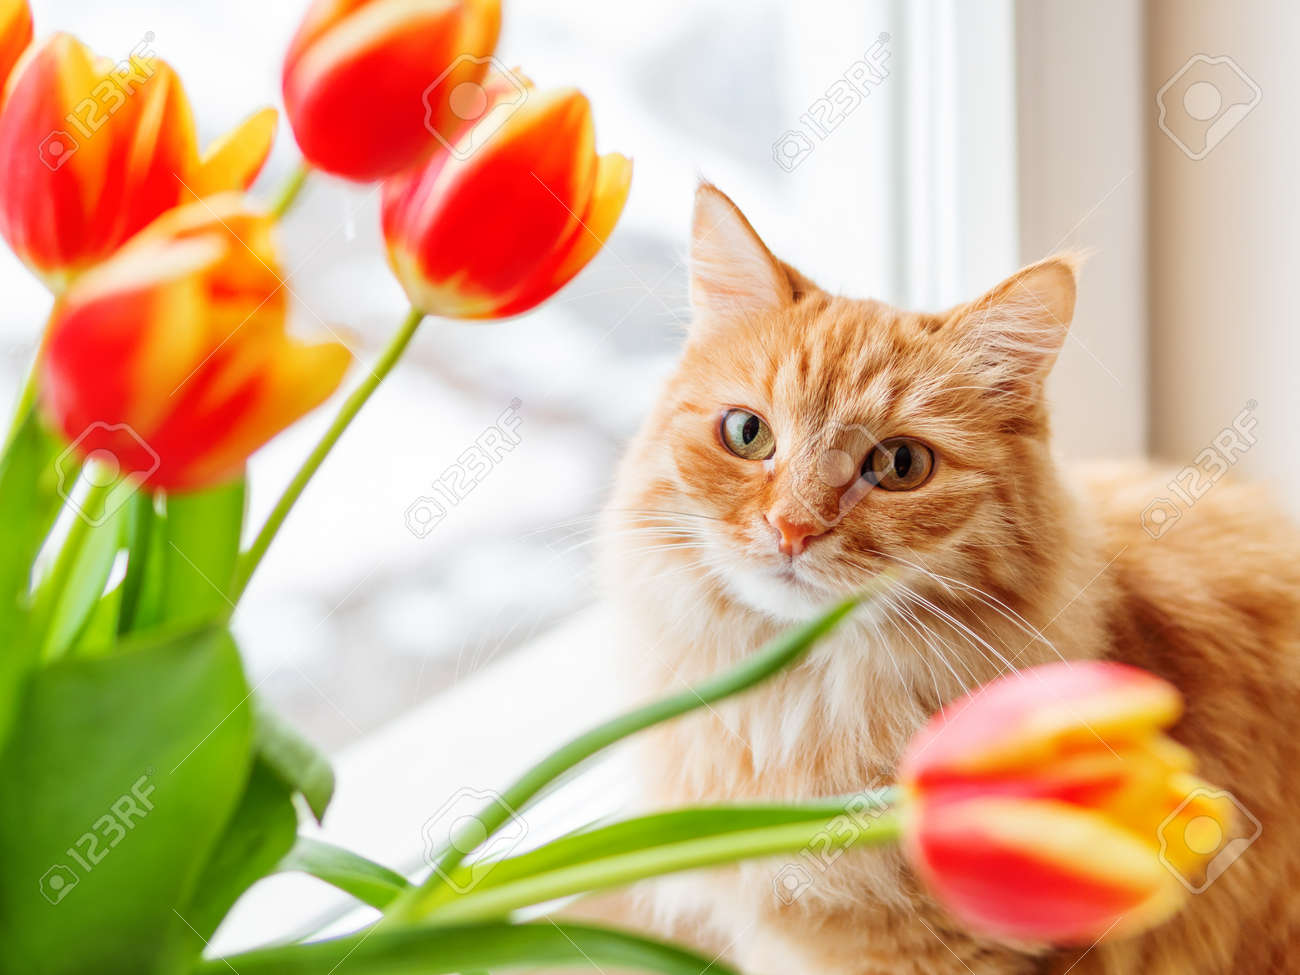 Cute ginger cat with bouquet of red tulips. Fluffy pet with colorful flowers. Cozy spring morning at home. - 118540327